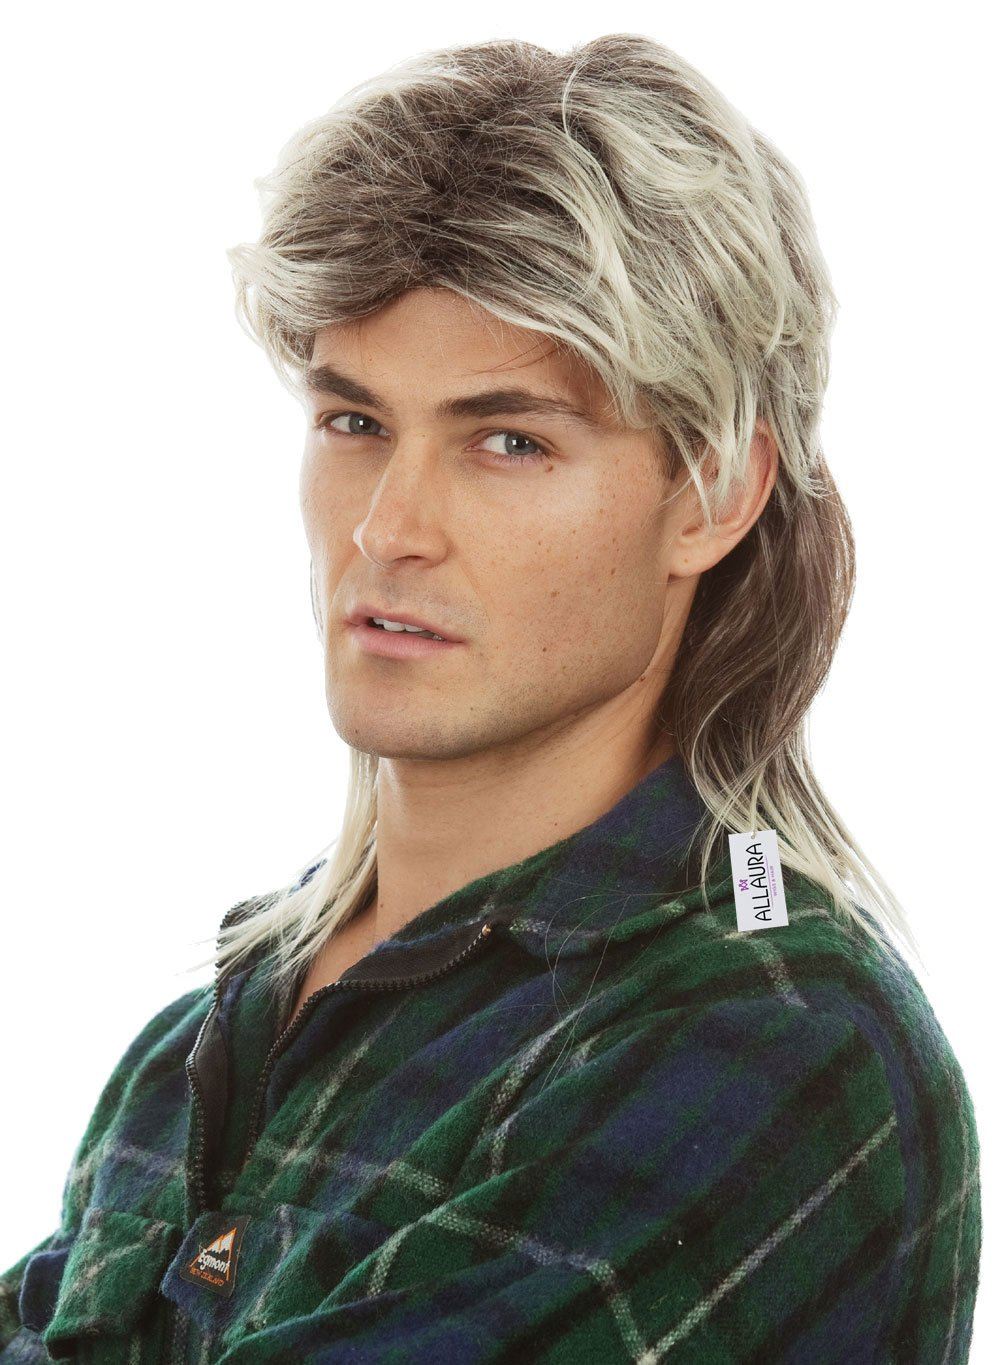 80s Blonde Mullet Wig for Men - Joe Dirt Wigs White Trash Redneck Costume